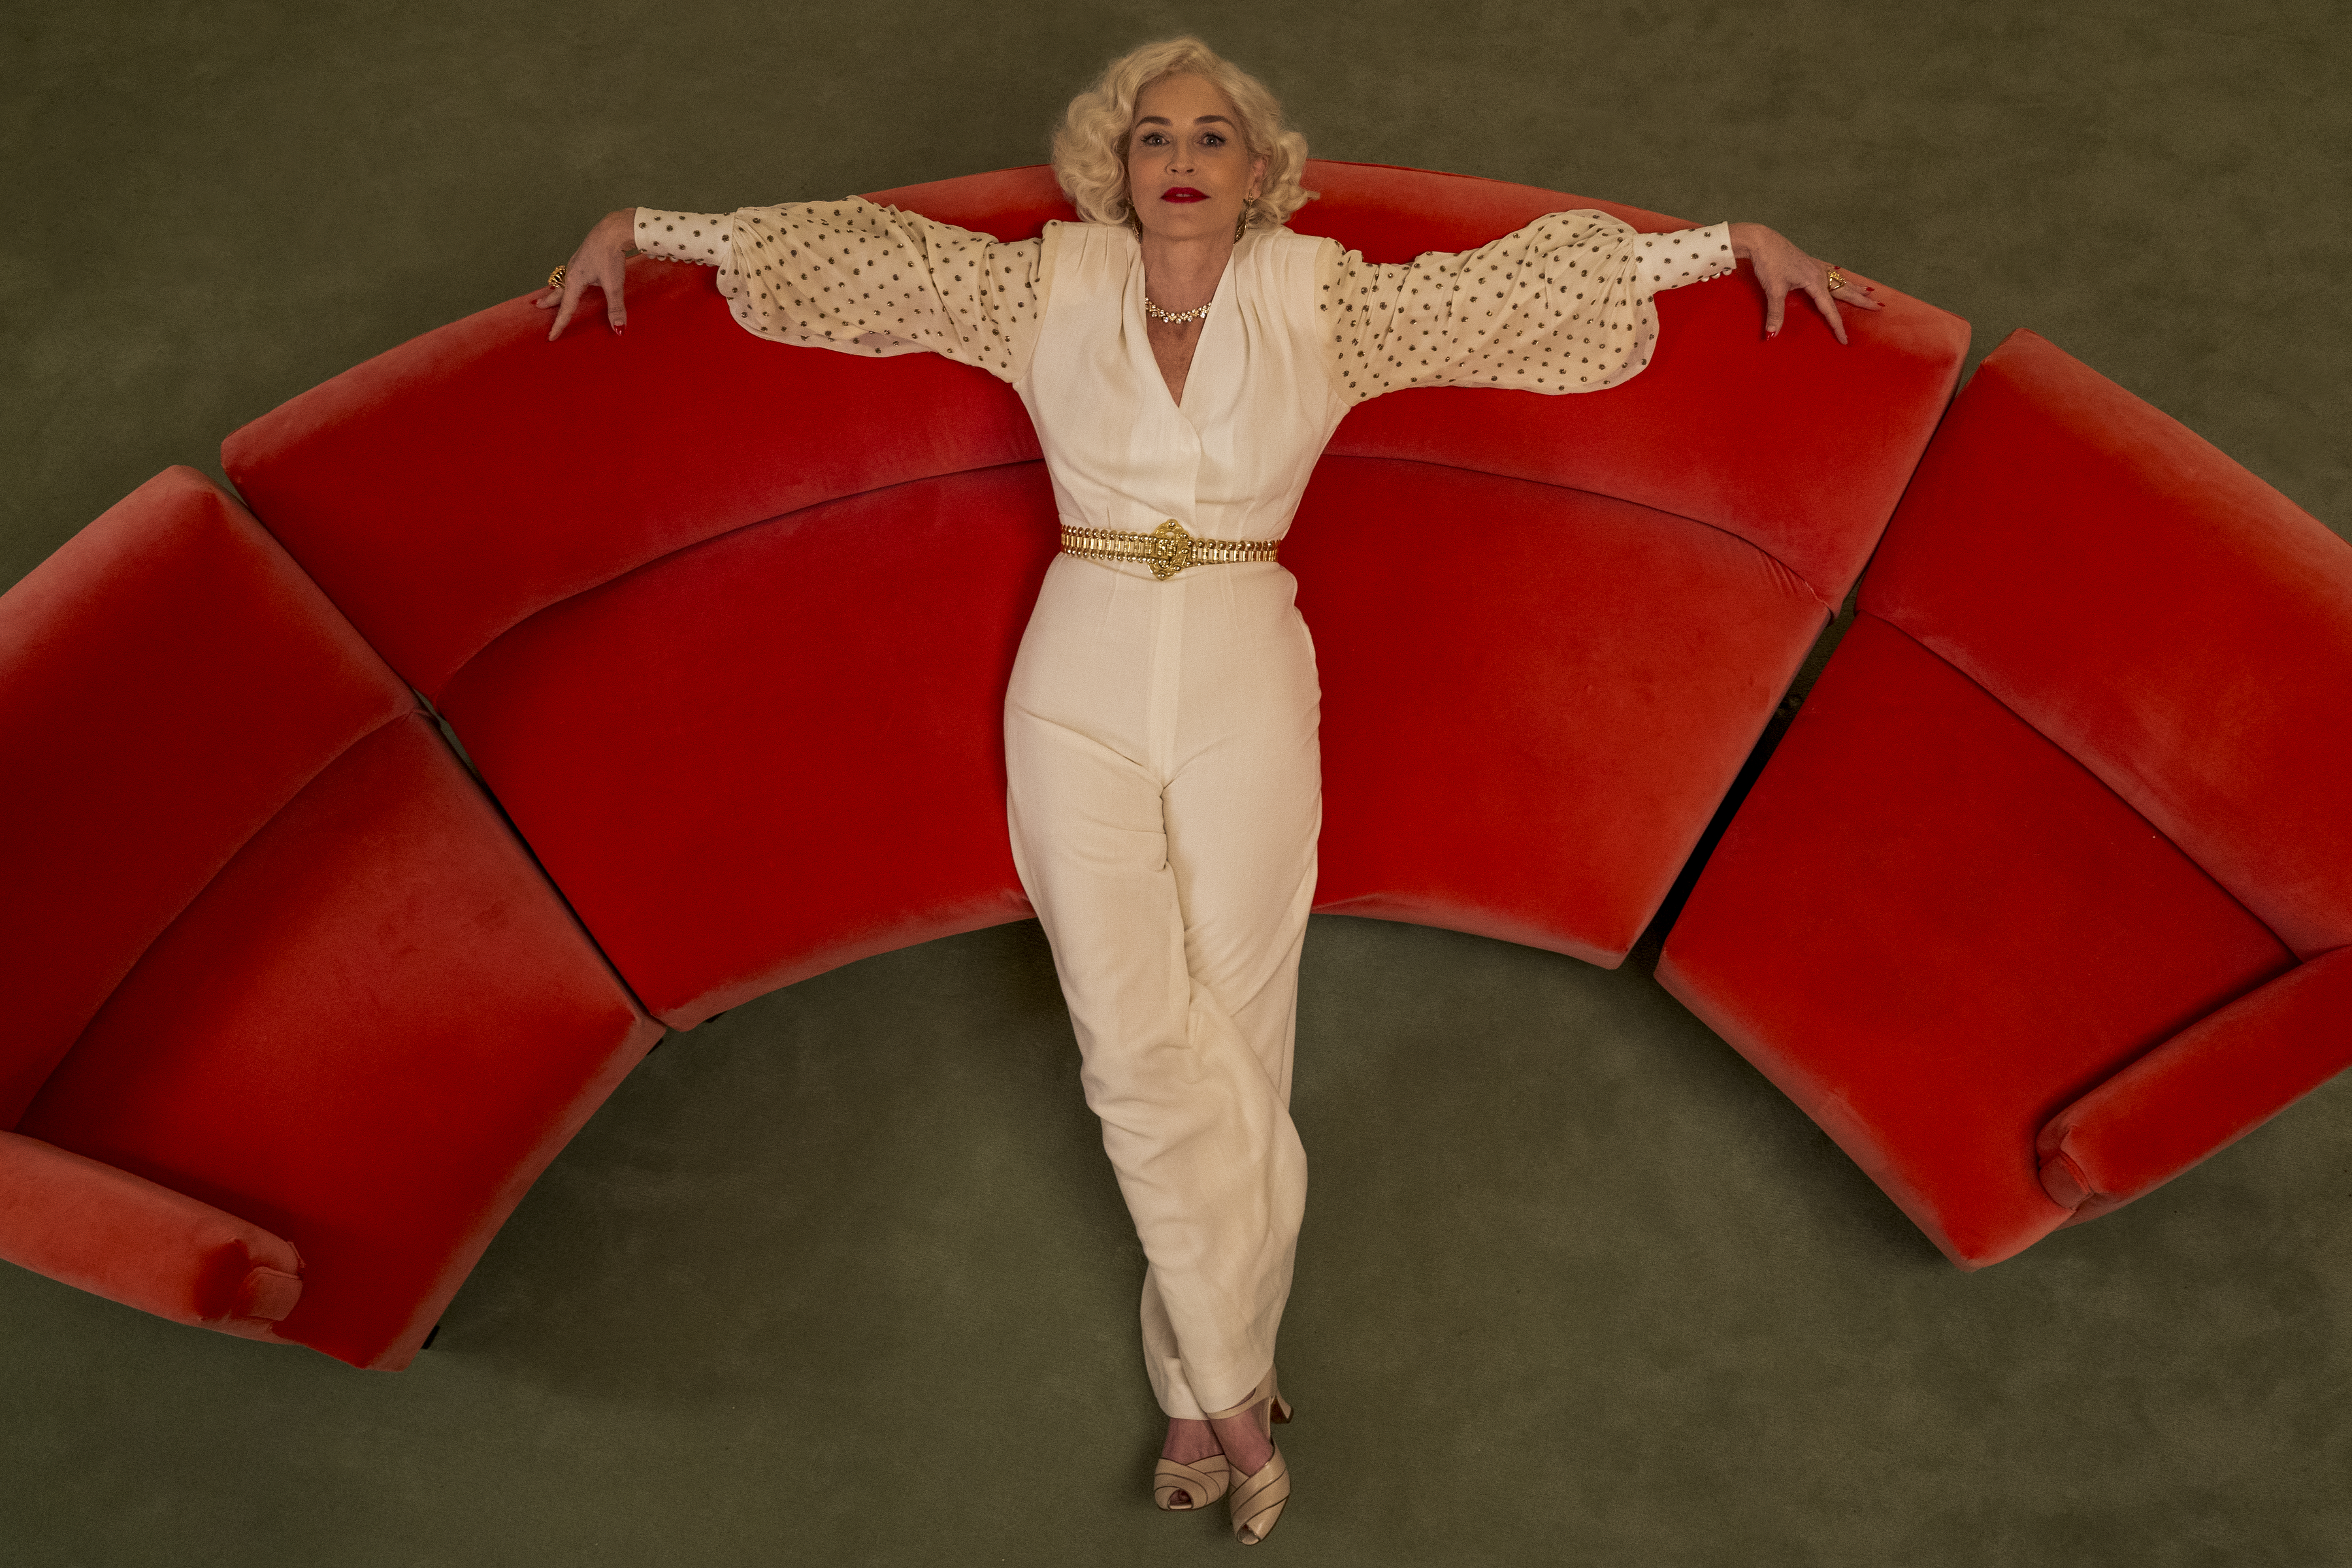 Sharon Stone, dressed in white, lounges on a semi-circular red couch